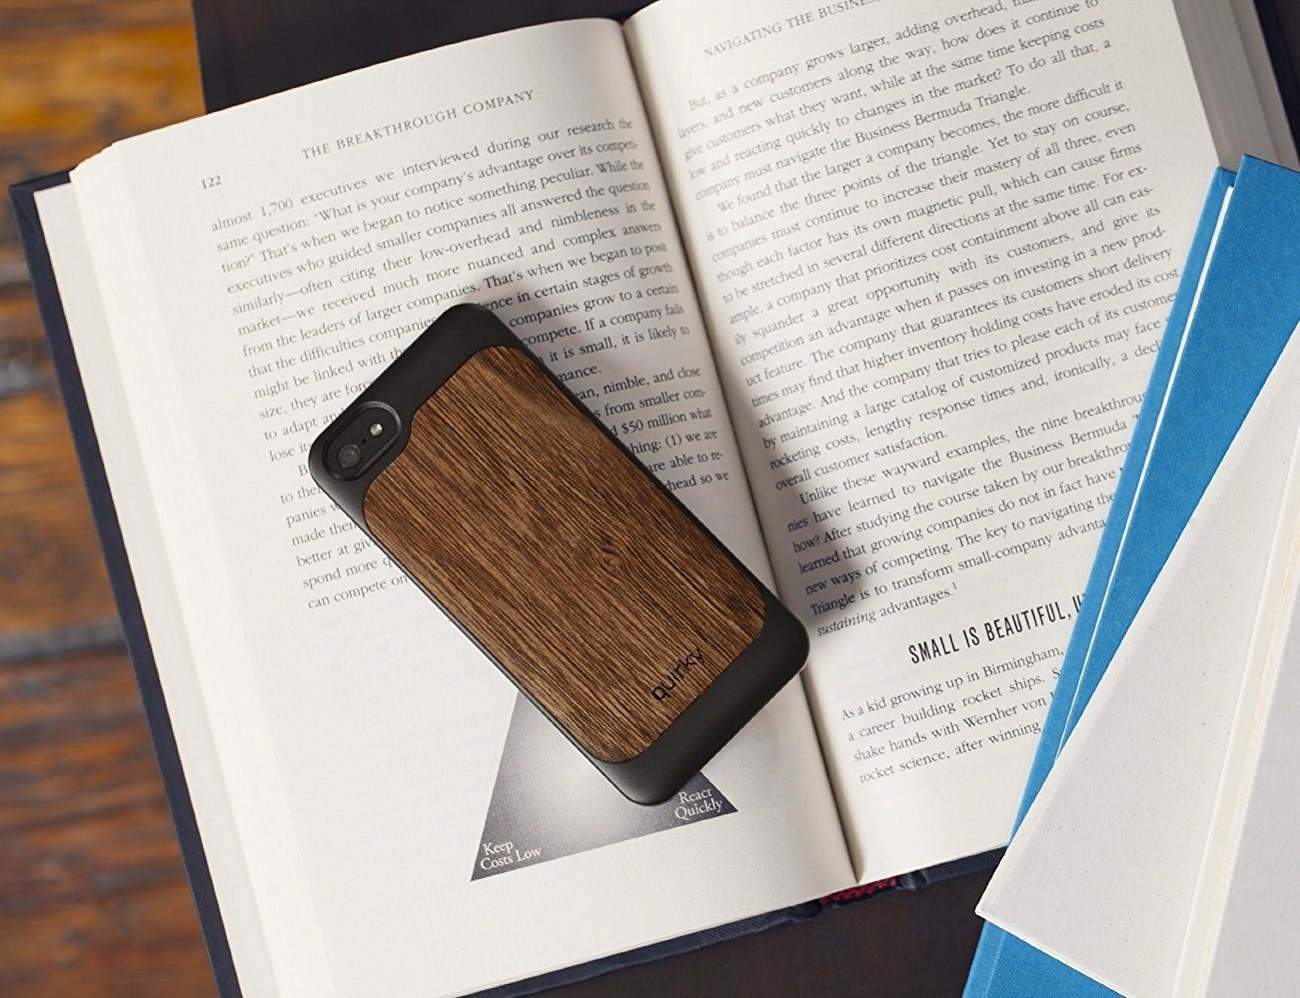 Pli Wood Case For iPhone SE/5s